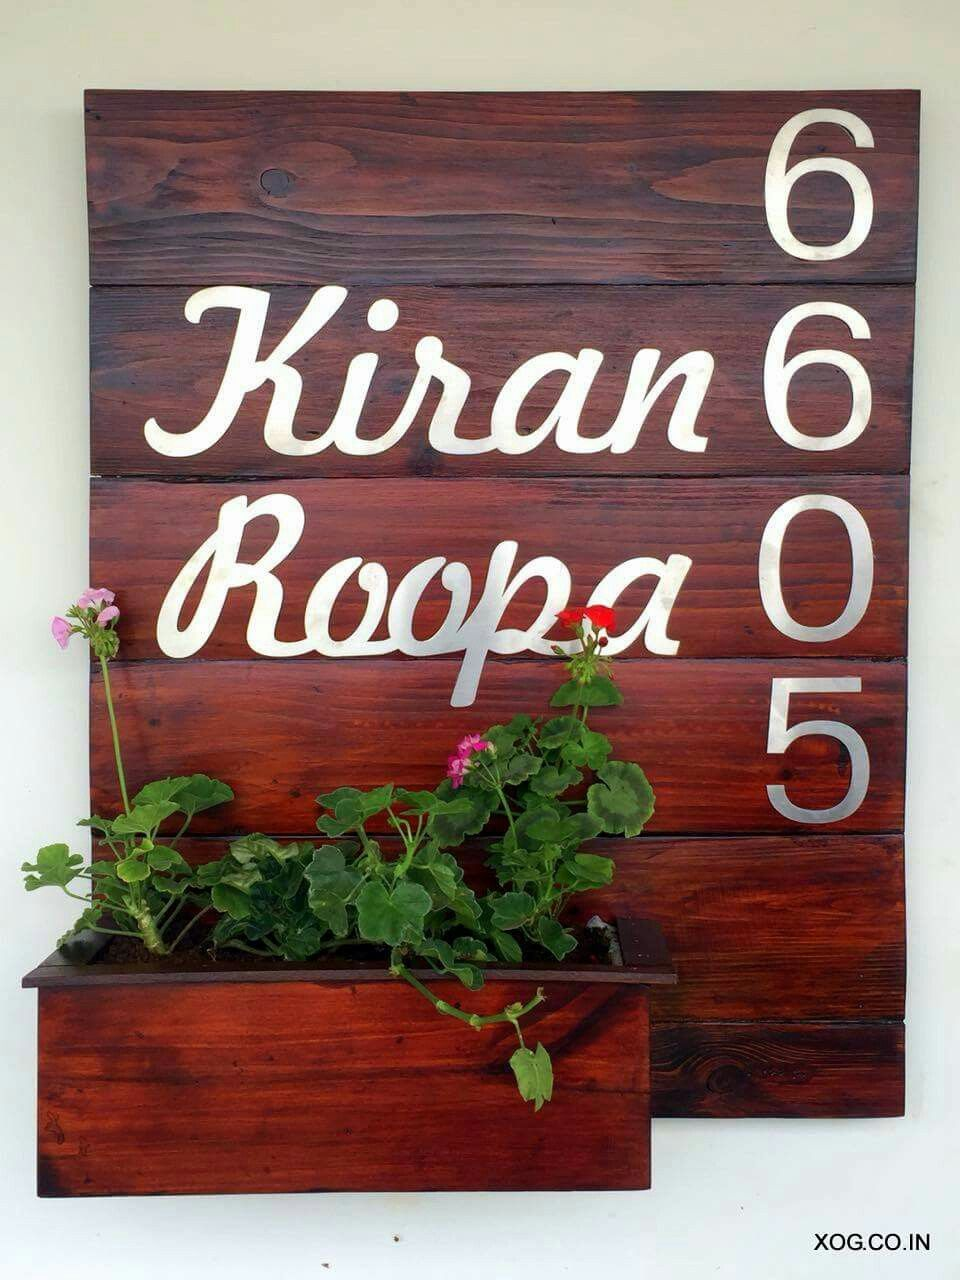 Name Plate Planters By Xanadu Organic Gardens These Living Name Plates Are Sure To Warm Up The Entrance Name Plates For Home Name Plate Design Name Wall Decor